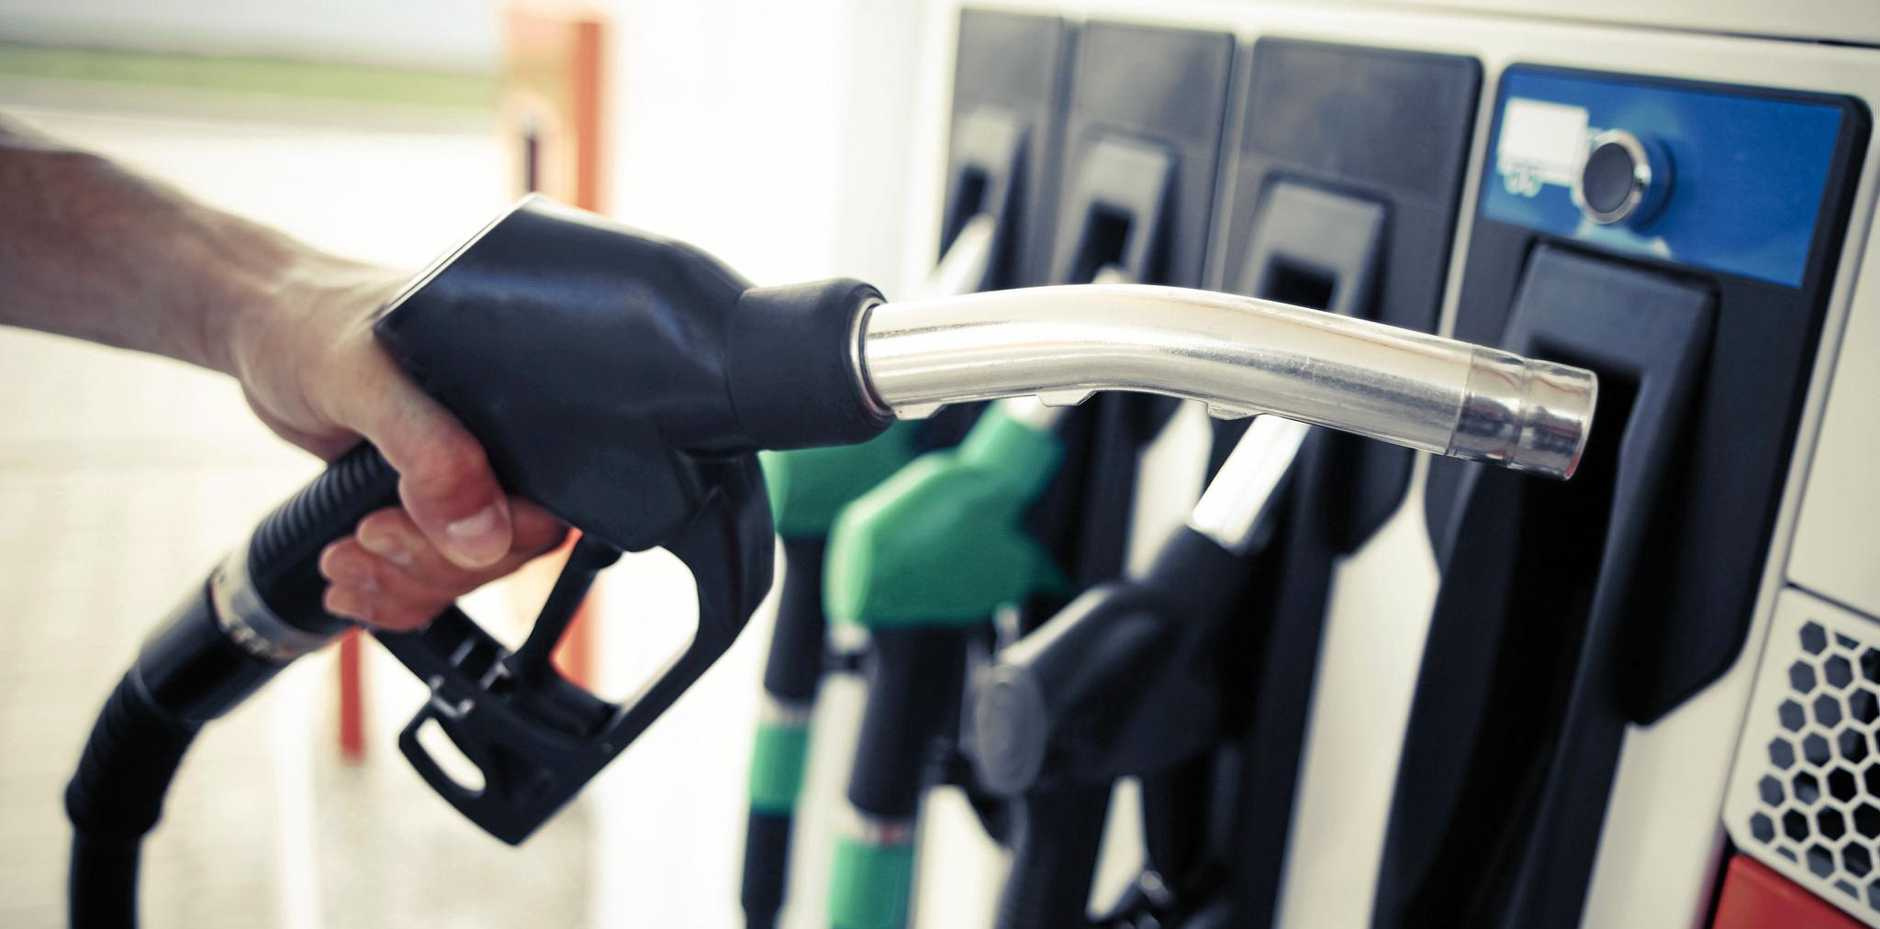 UP AND DOWN: Gympie's petrol prices in 2016 were erratic.